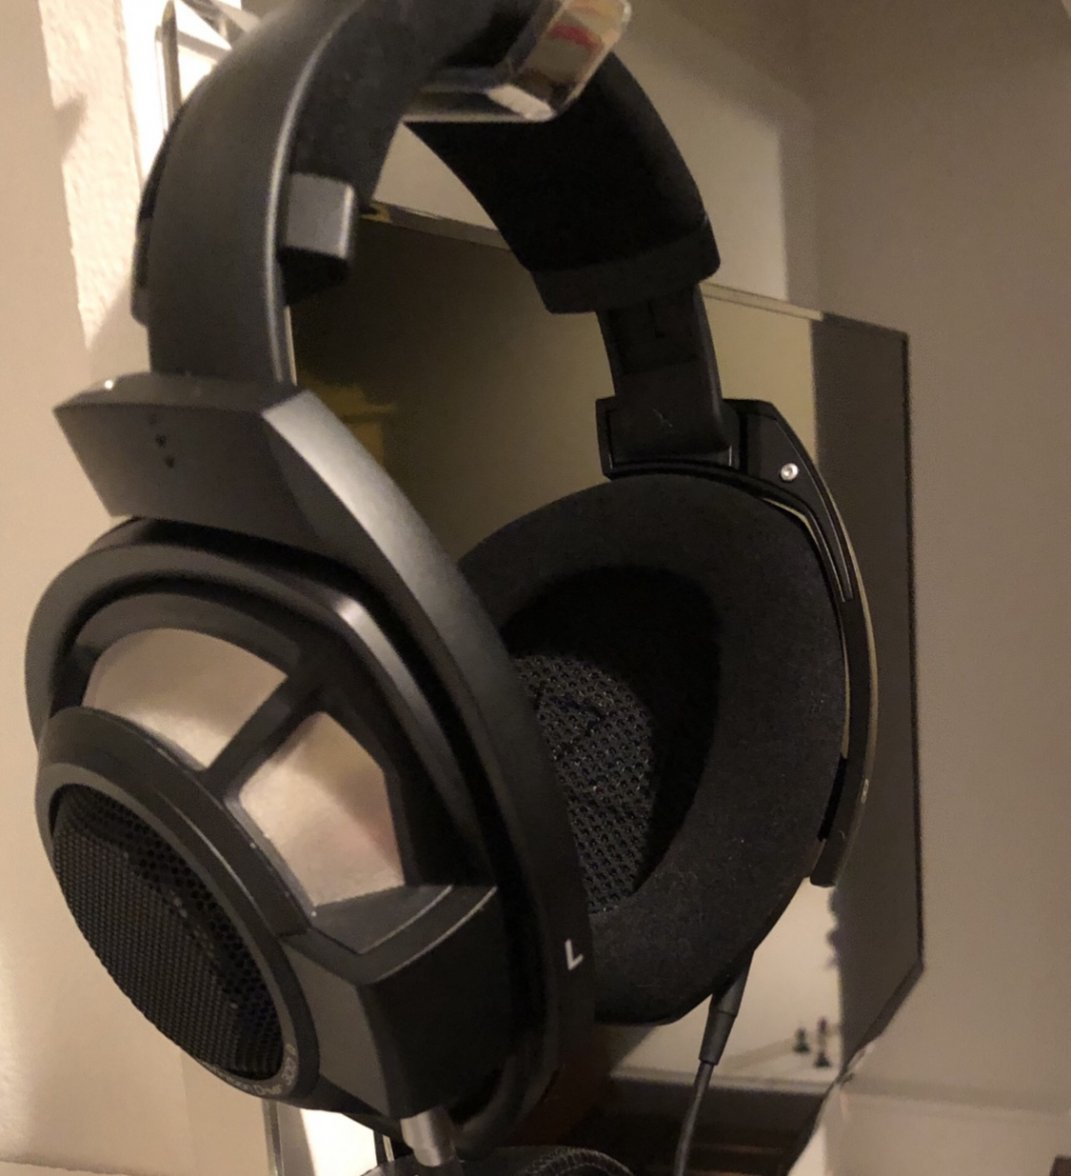 What do you listen to your music on? | Page 7 | Omega Forums